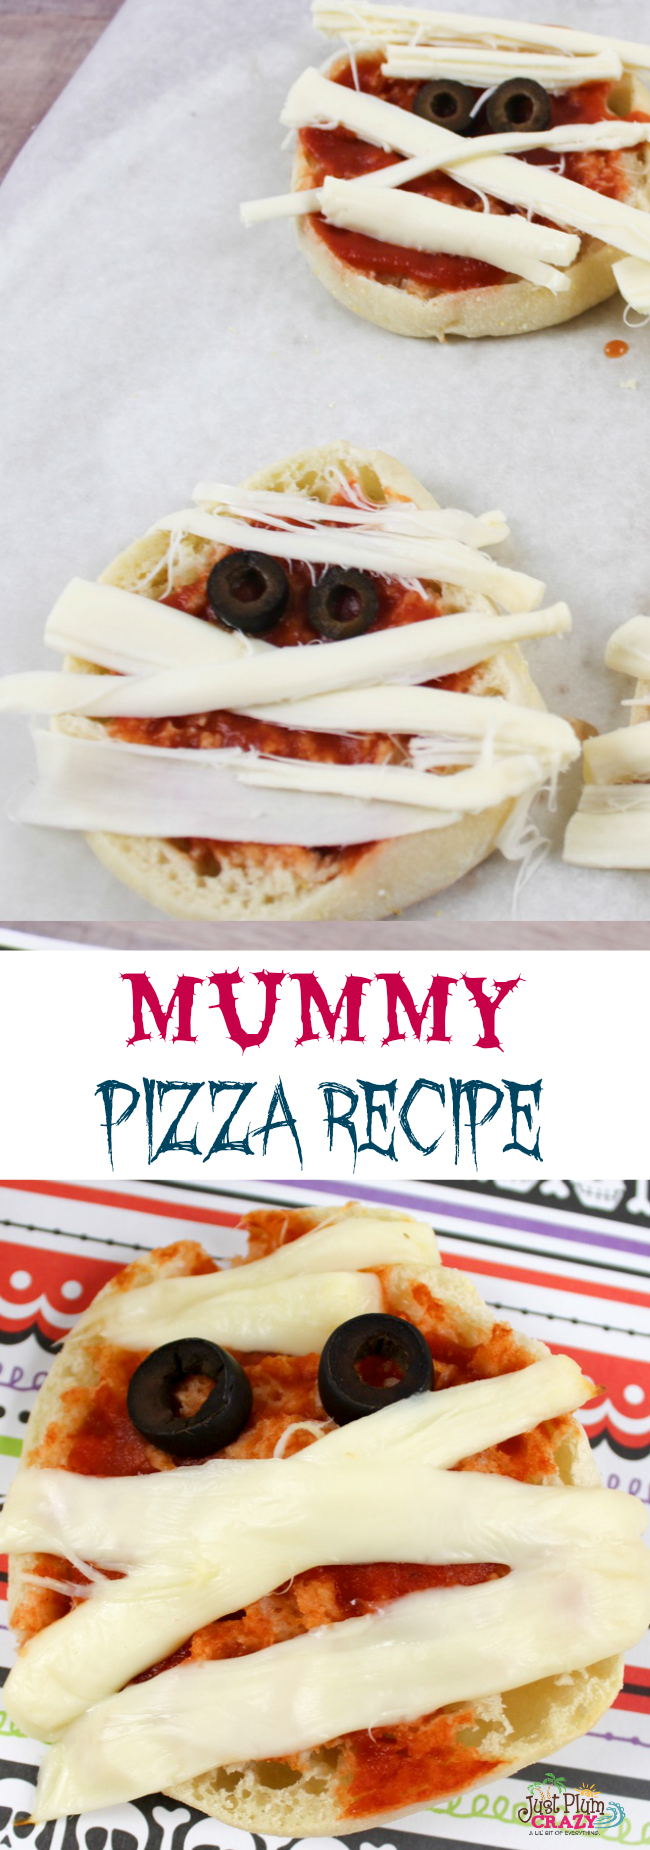 Halloween Mummy Pizza Recipe